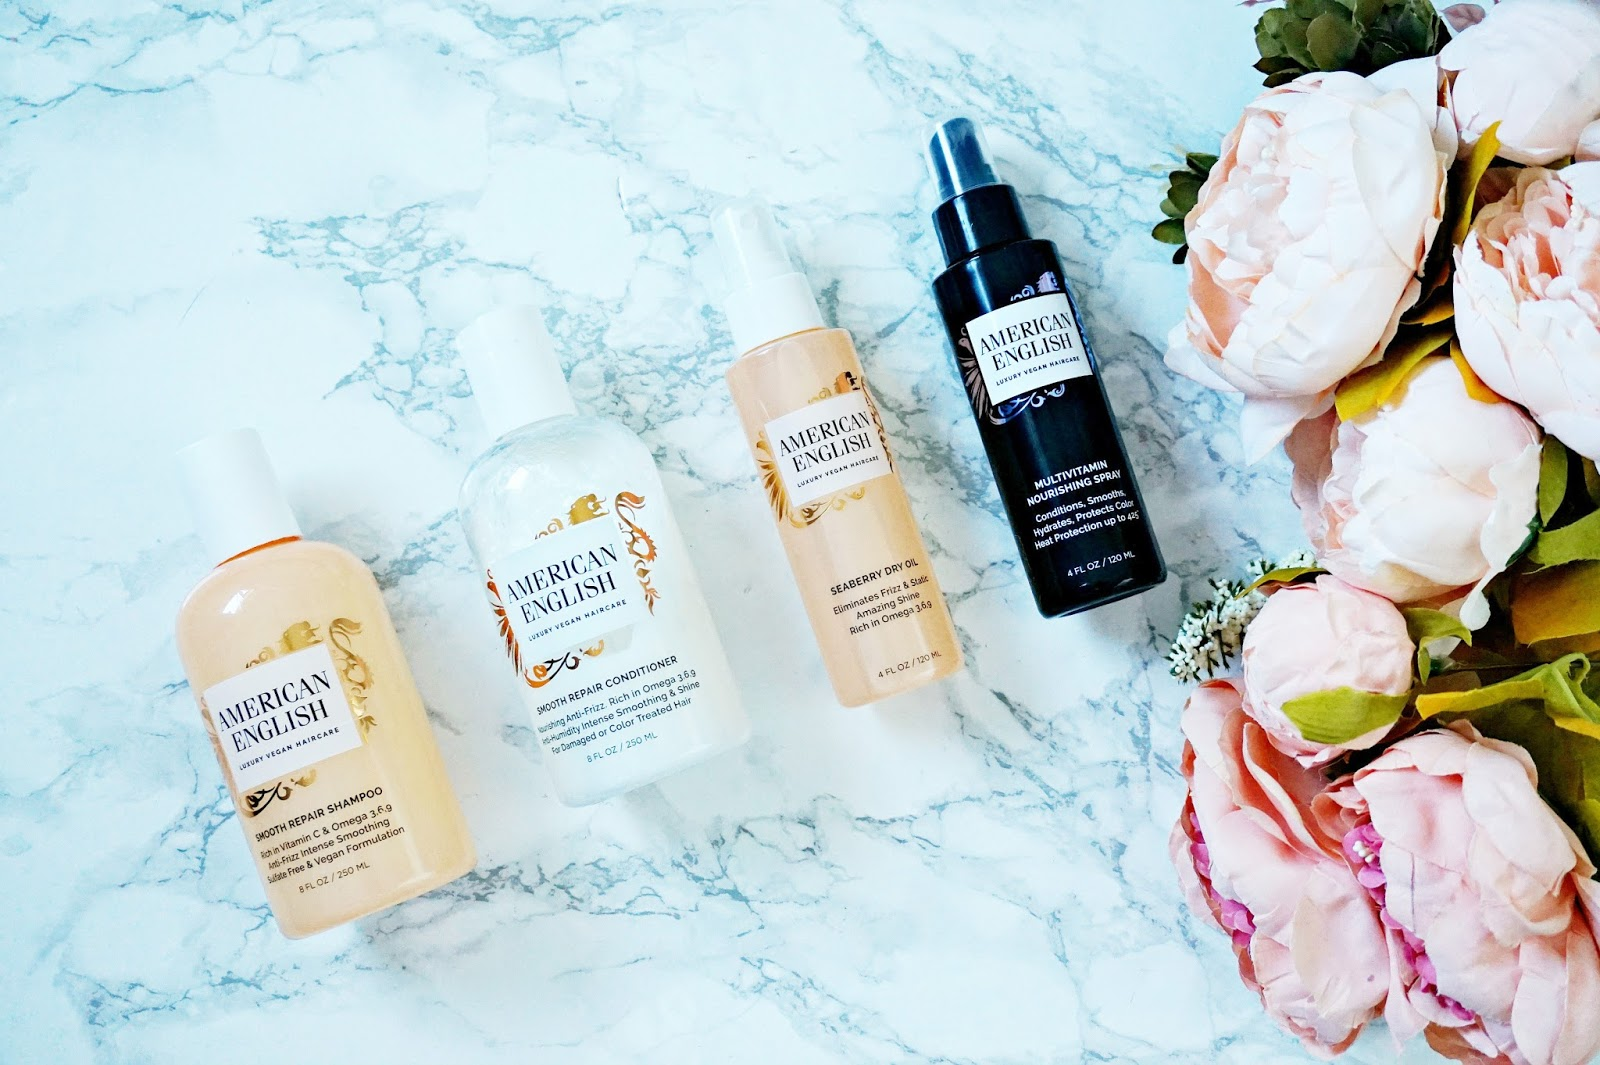 American English hair products review